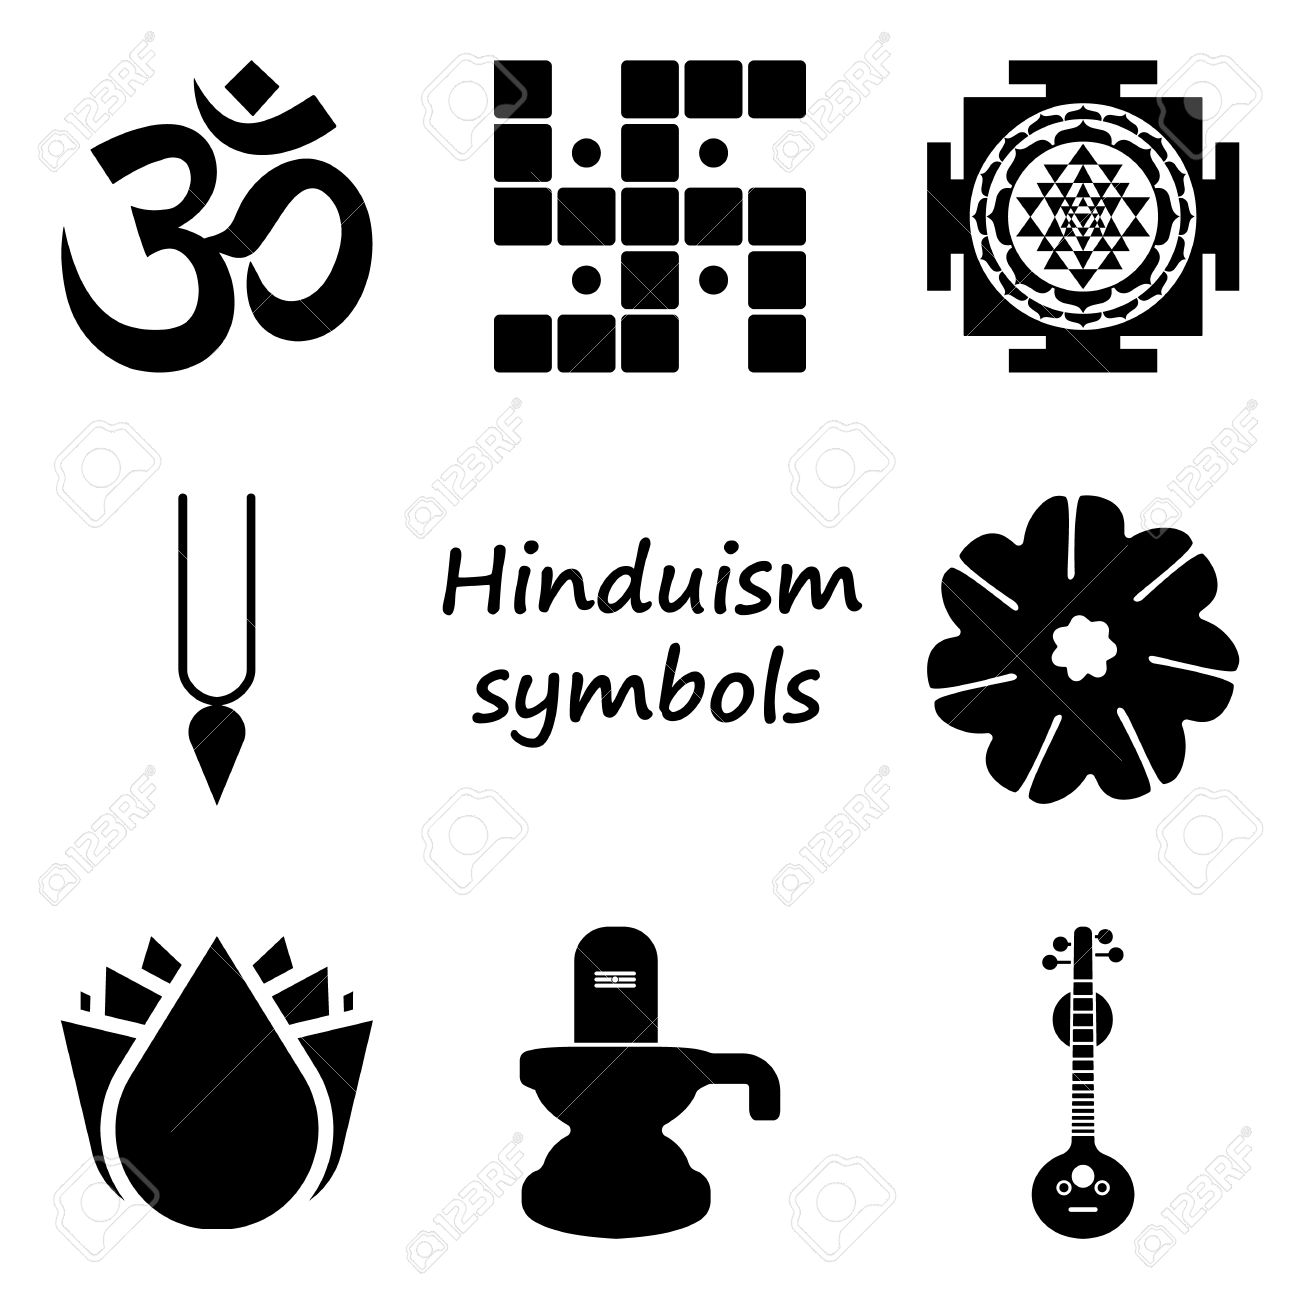 hinduism symbol sign simple icon set on background royalty free